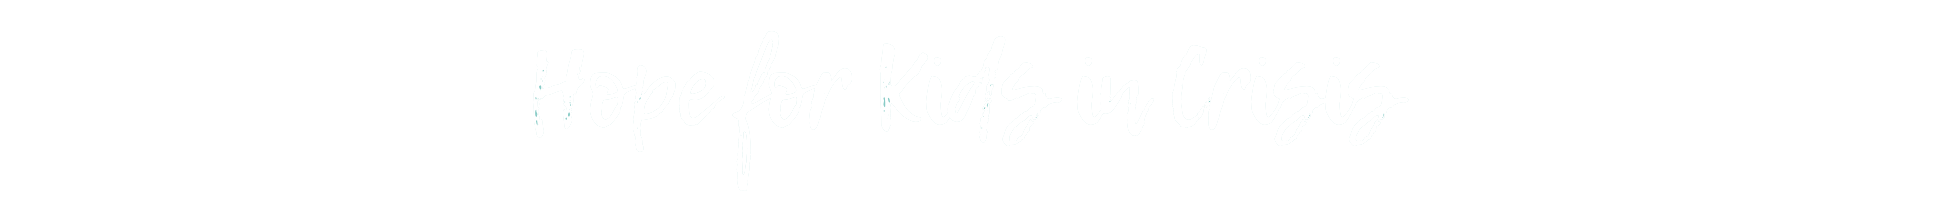 hope for kids in crisis copy.png